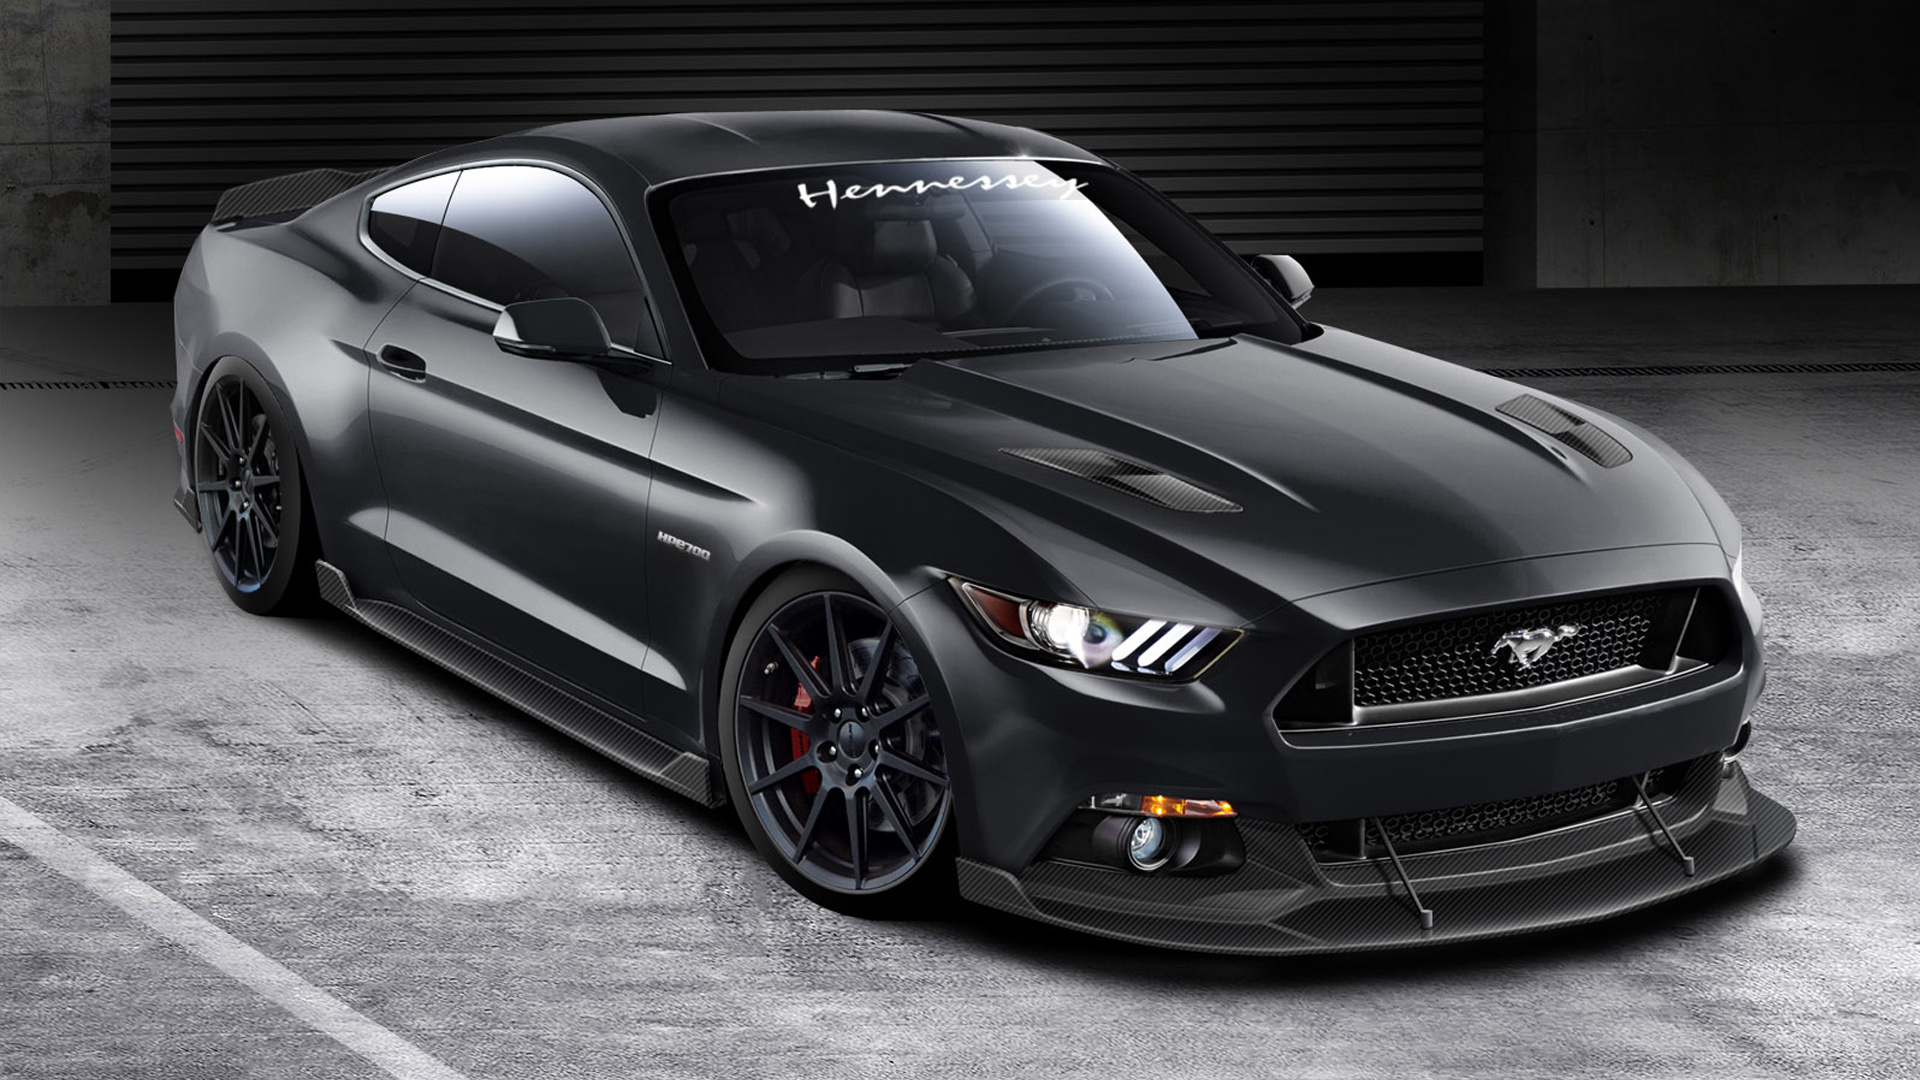 2015 Hennessey Ford Mustang GT Wallpaper HD Car Wallpapers 1920x1080